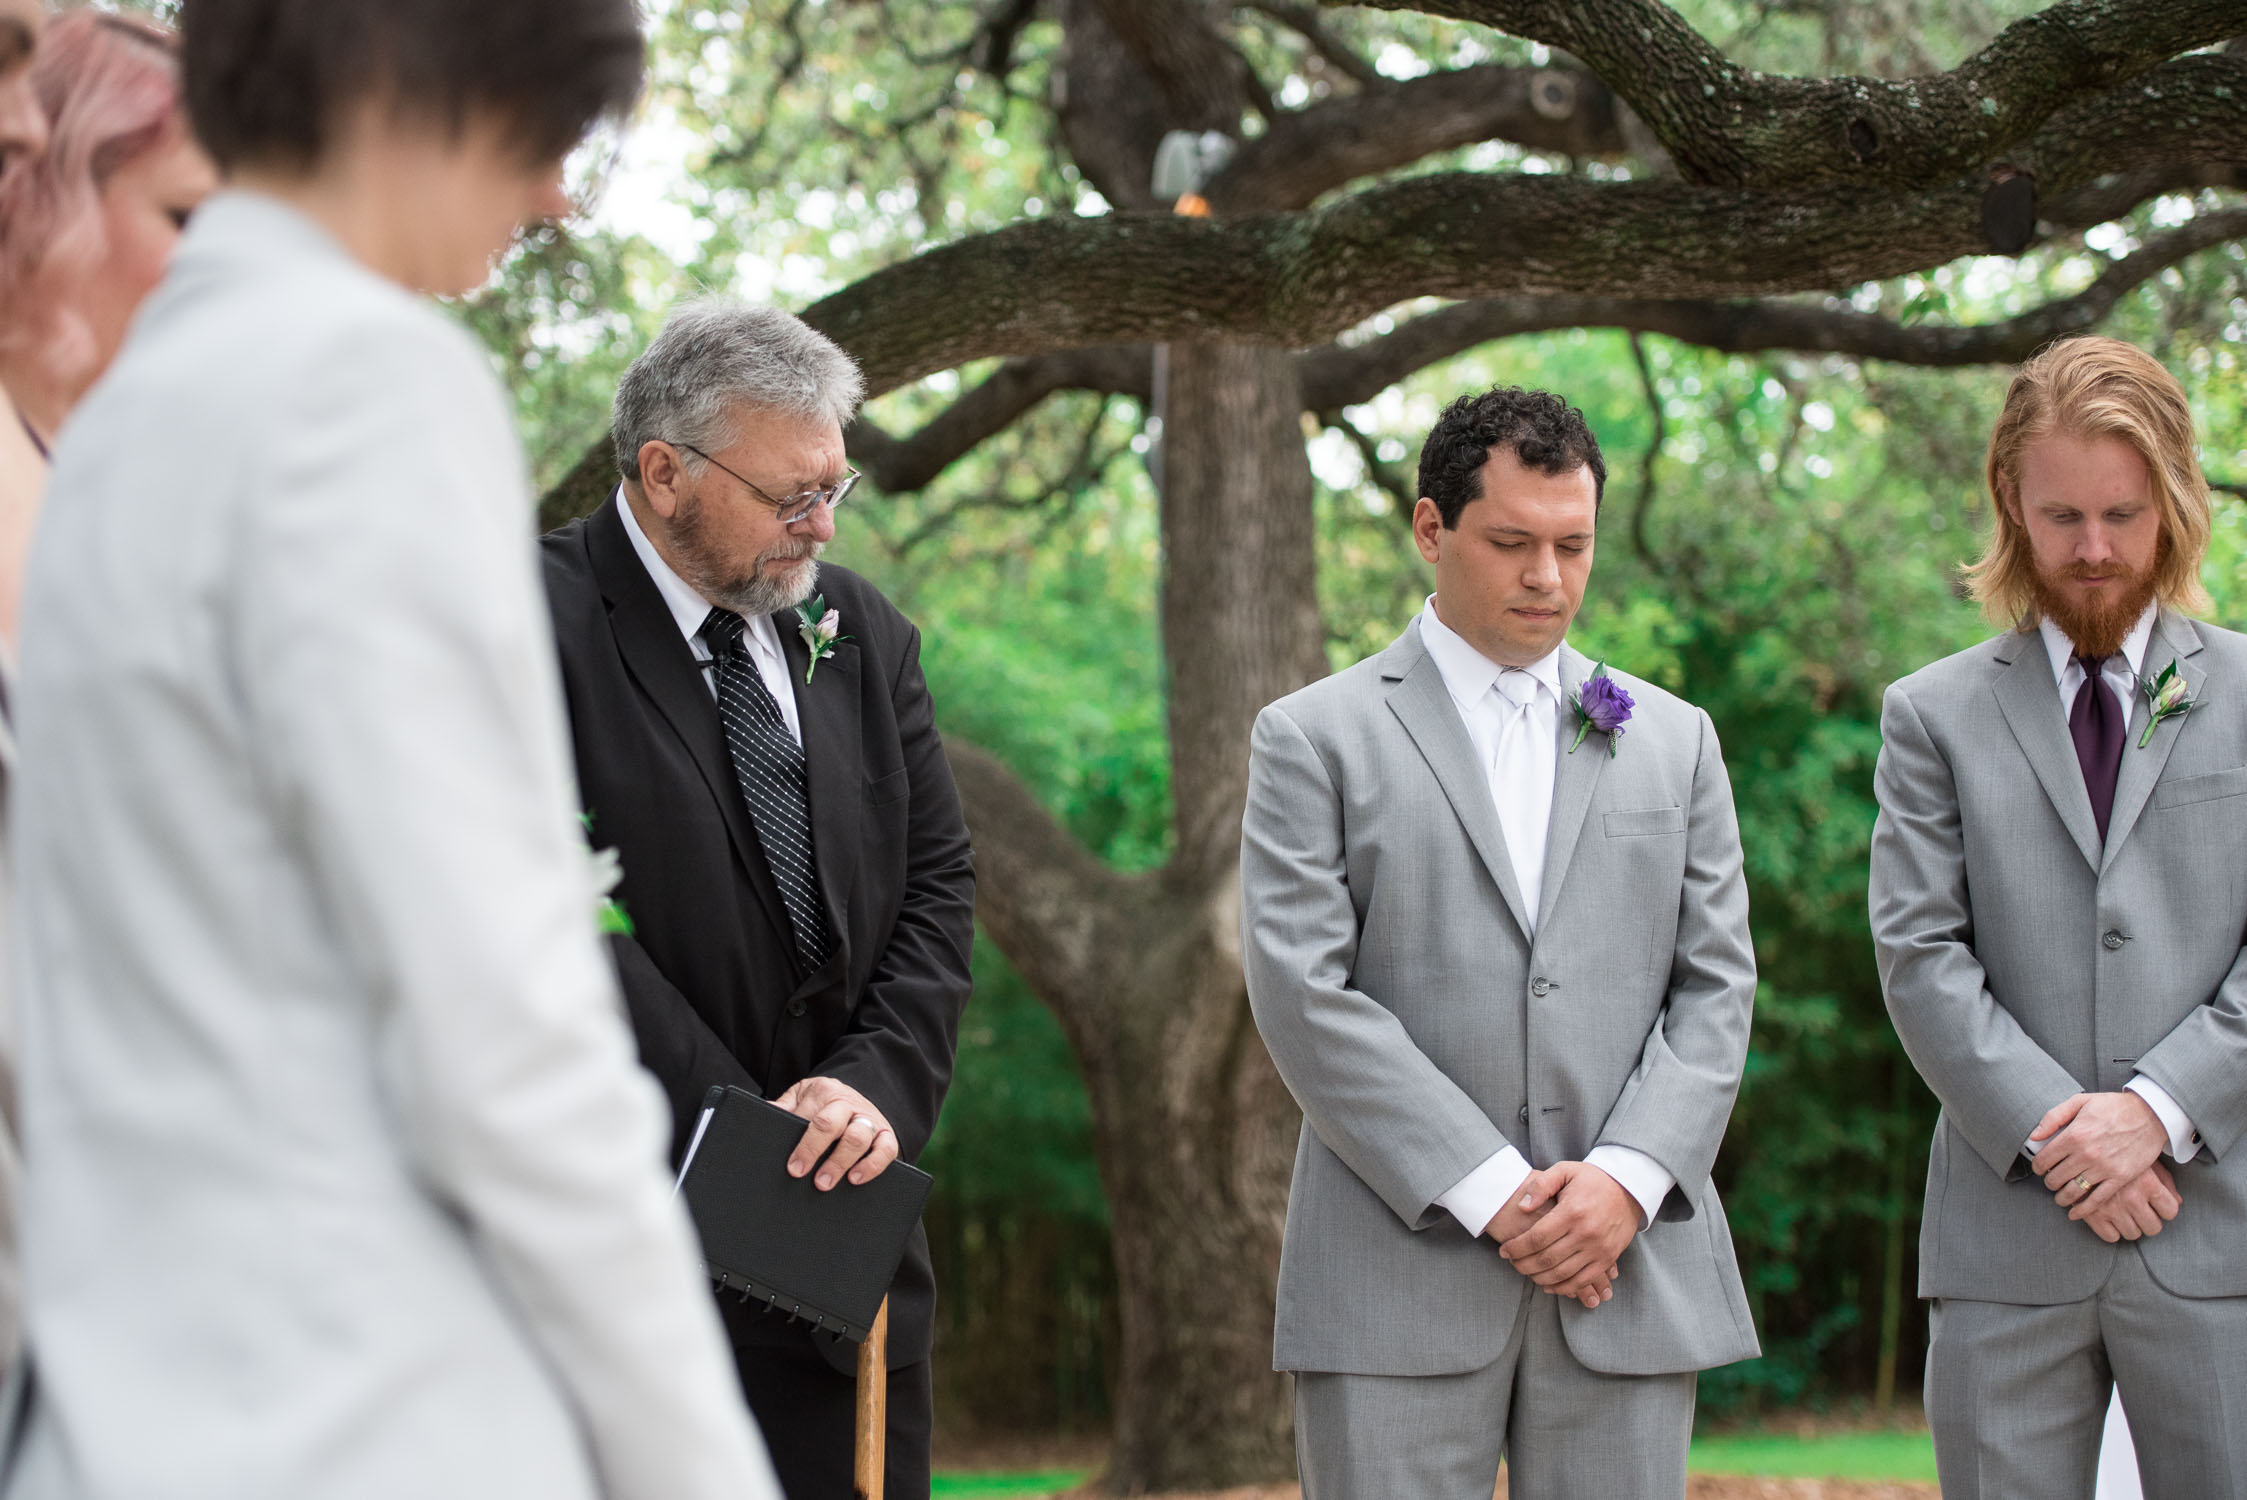 Alex and Austin Wedding Photography at Mercury Hall in Texas-77.jpg